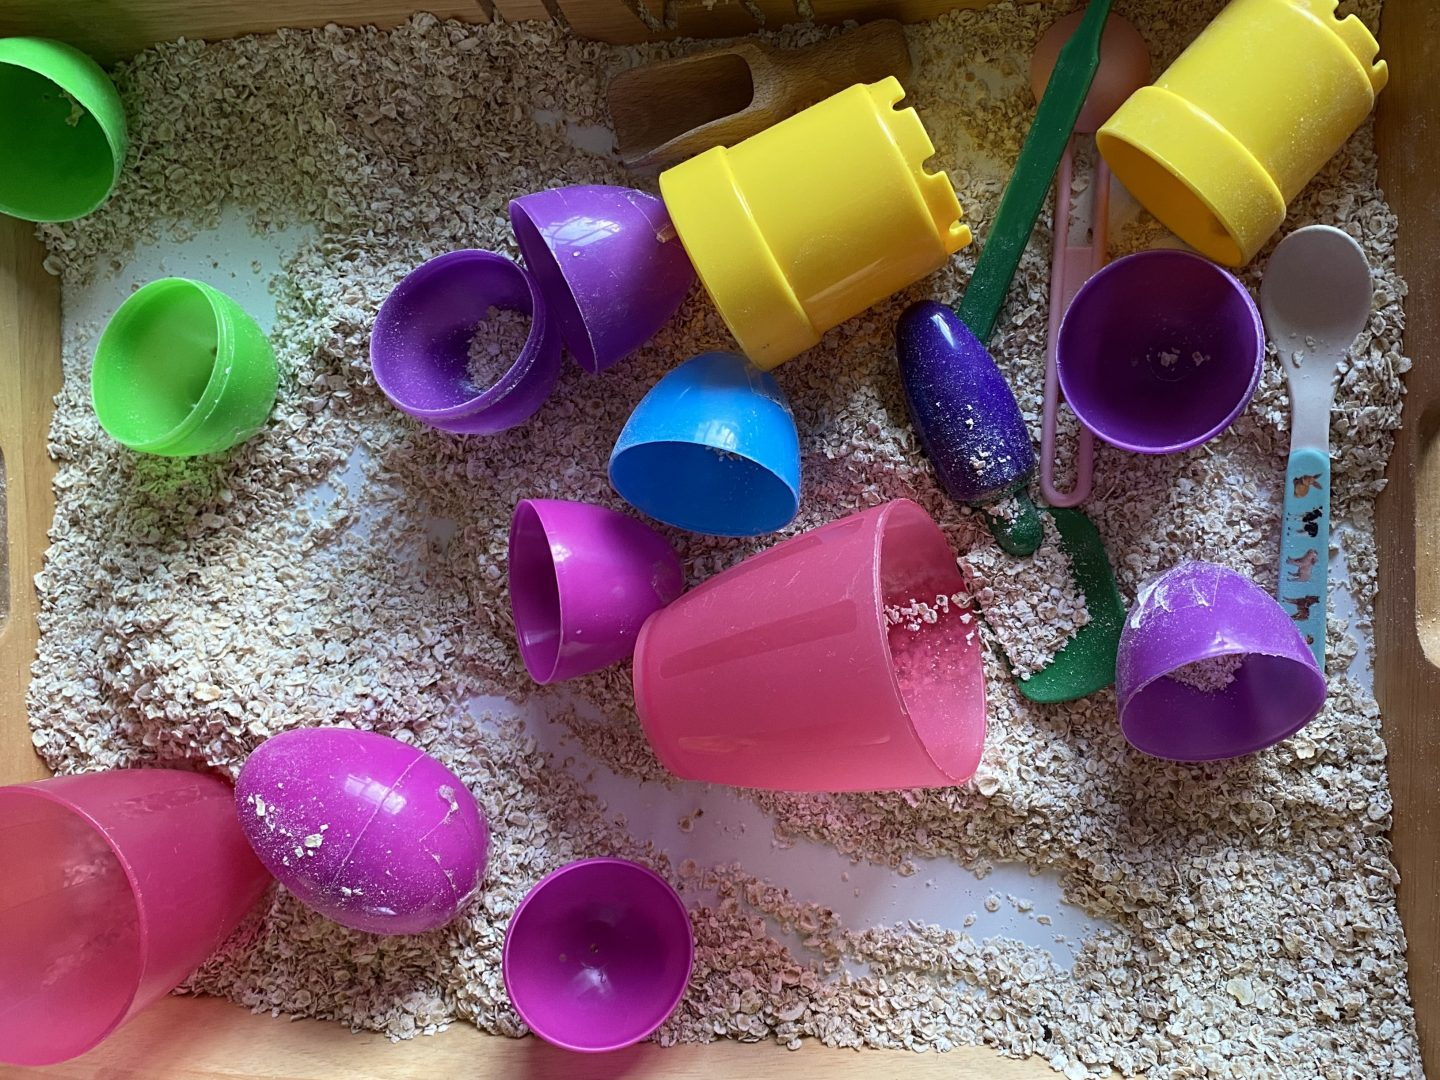 Spring sensory play  - a tray with oats and plastic eggs